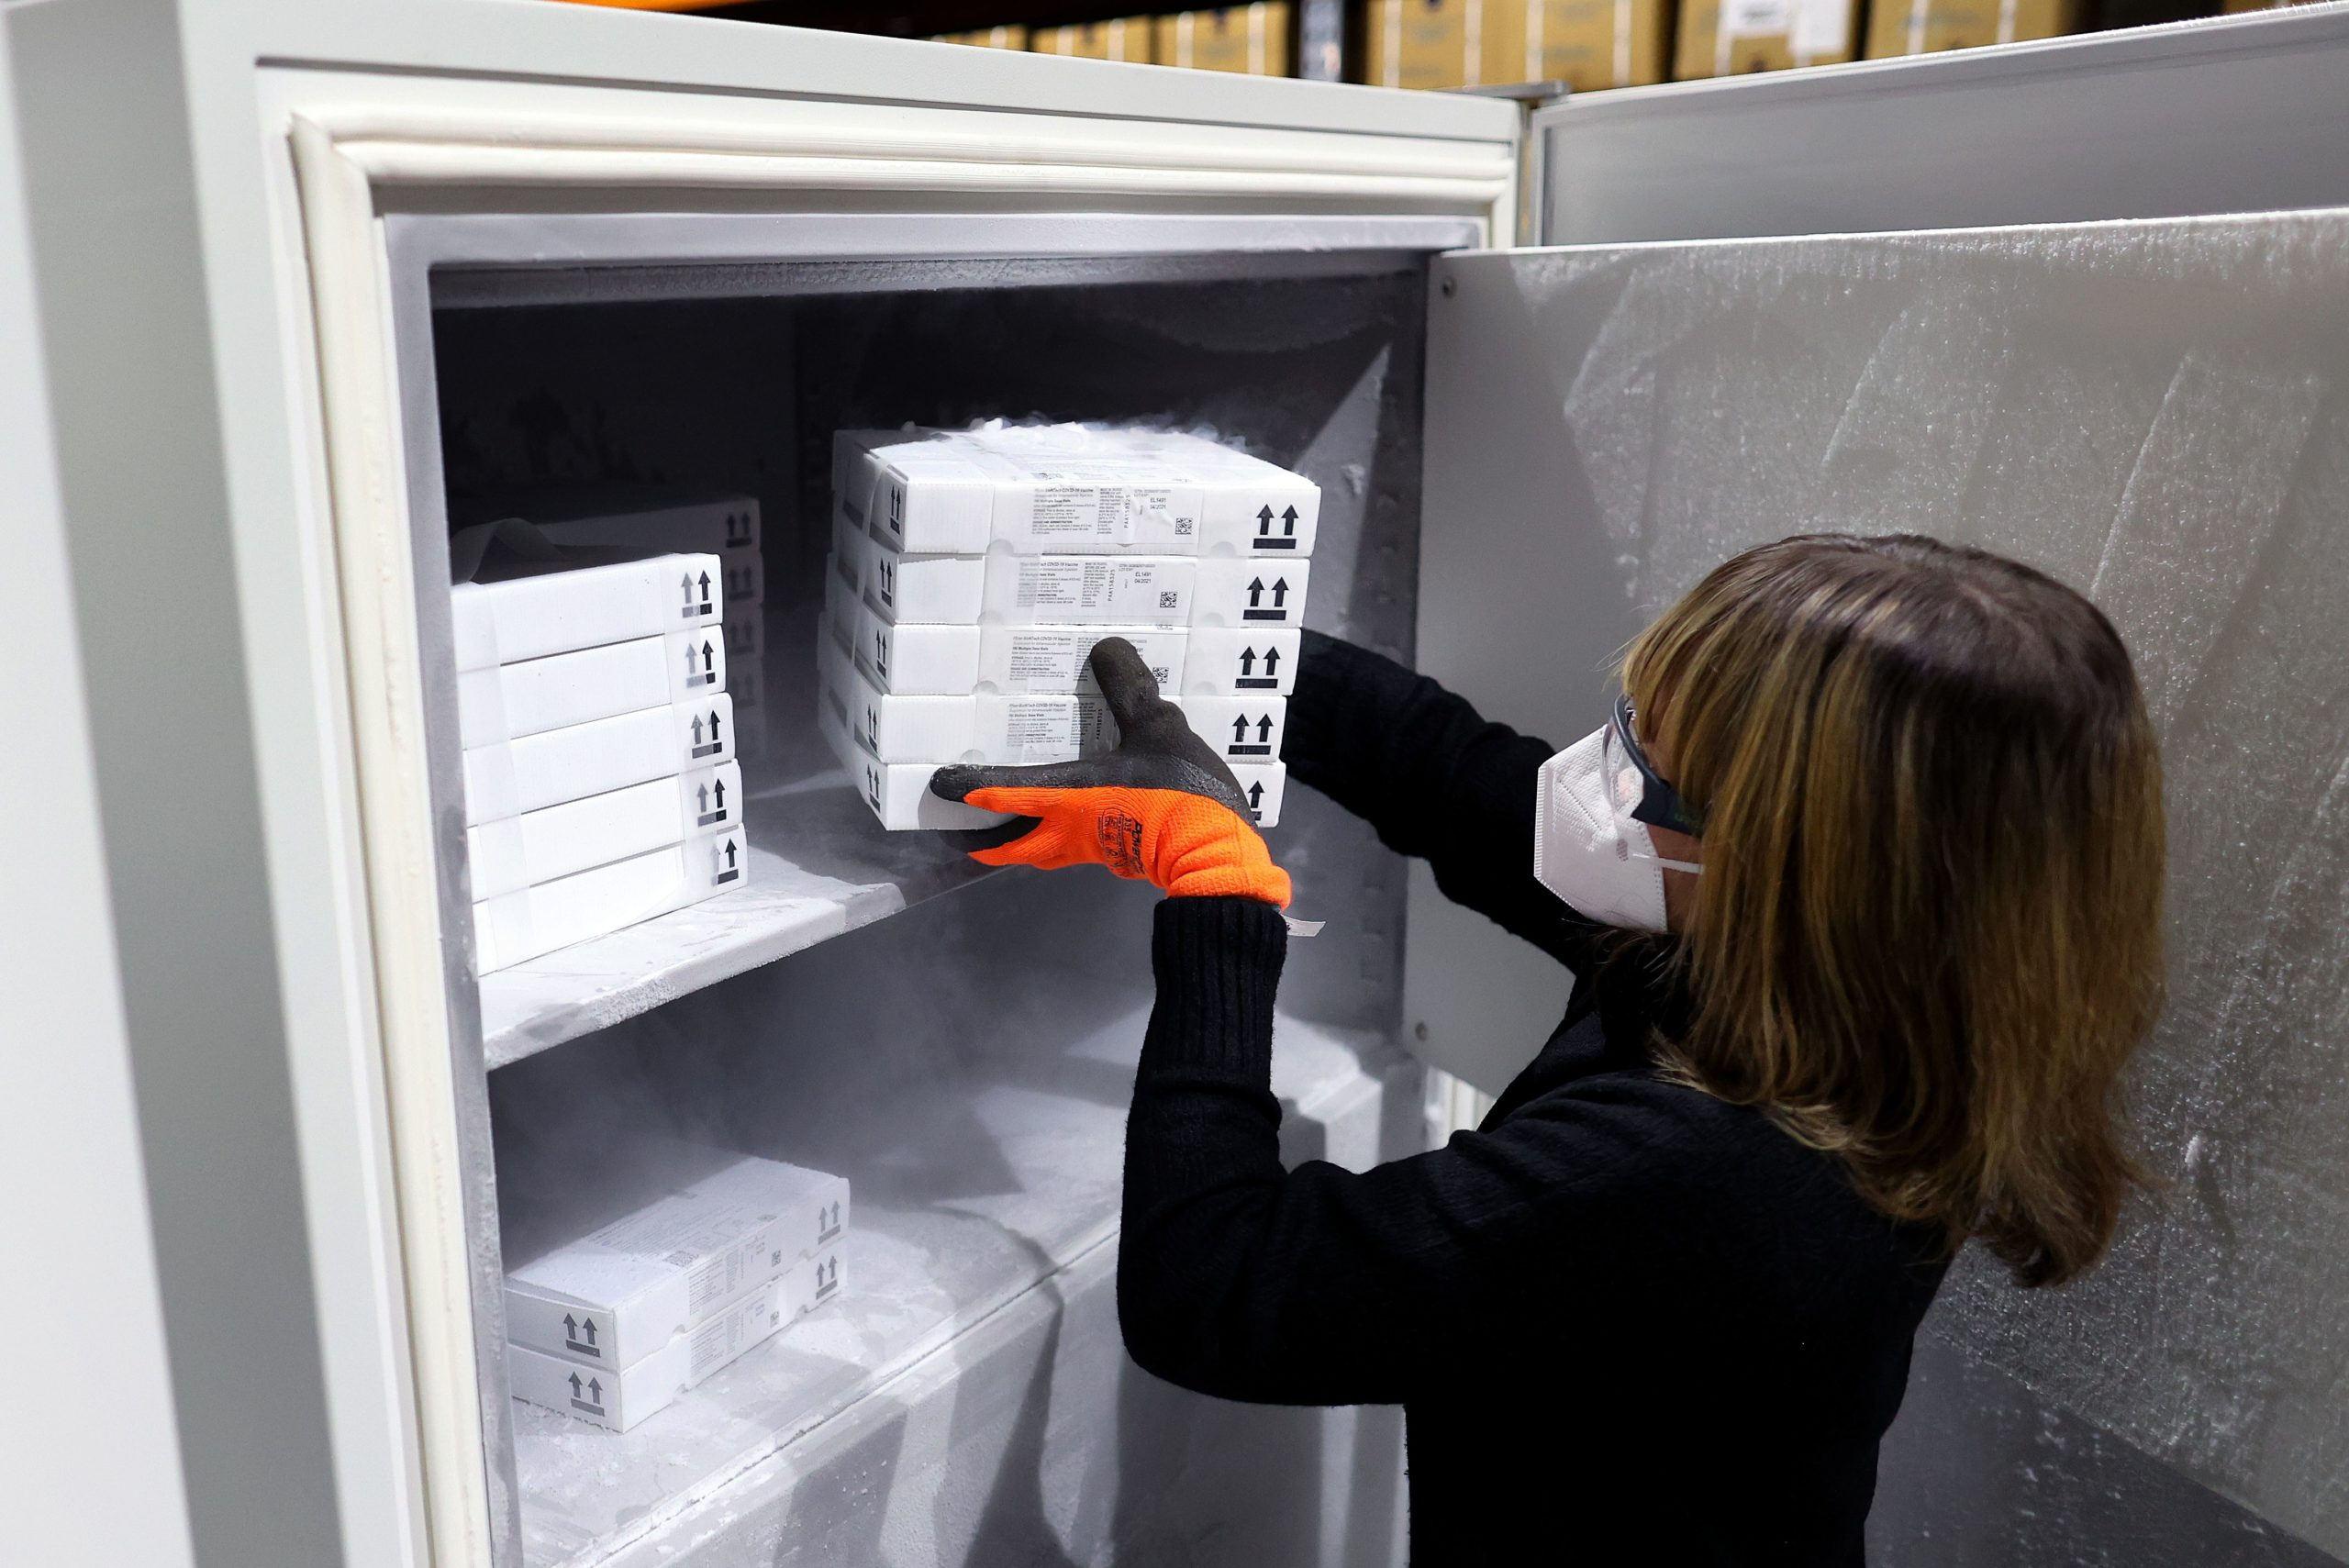 Employee Jessica Mueller puts the Pfizer-Biontech Covid-19 corona virus vaccine into an ultra-low freezer at the vaccine warehouse where the doses will be preserved before their distribution on January 08, 2021. (Photo by RONNY HARTMANN/AFP via Getty Images)